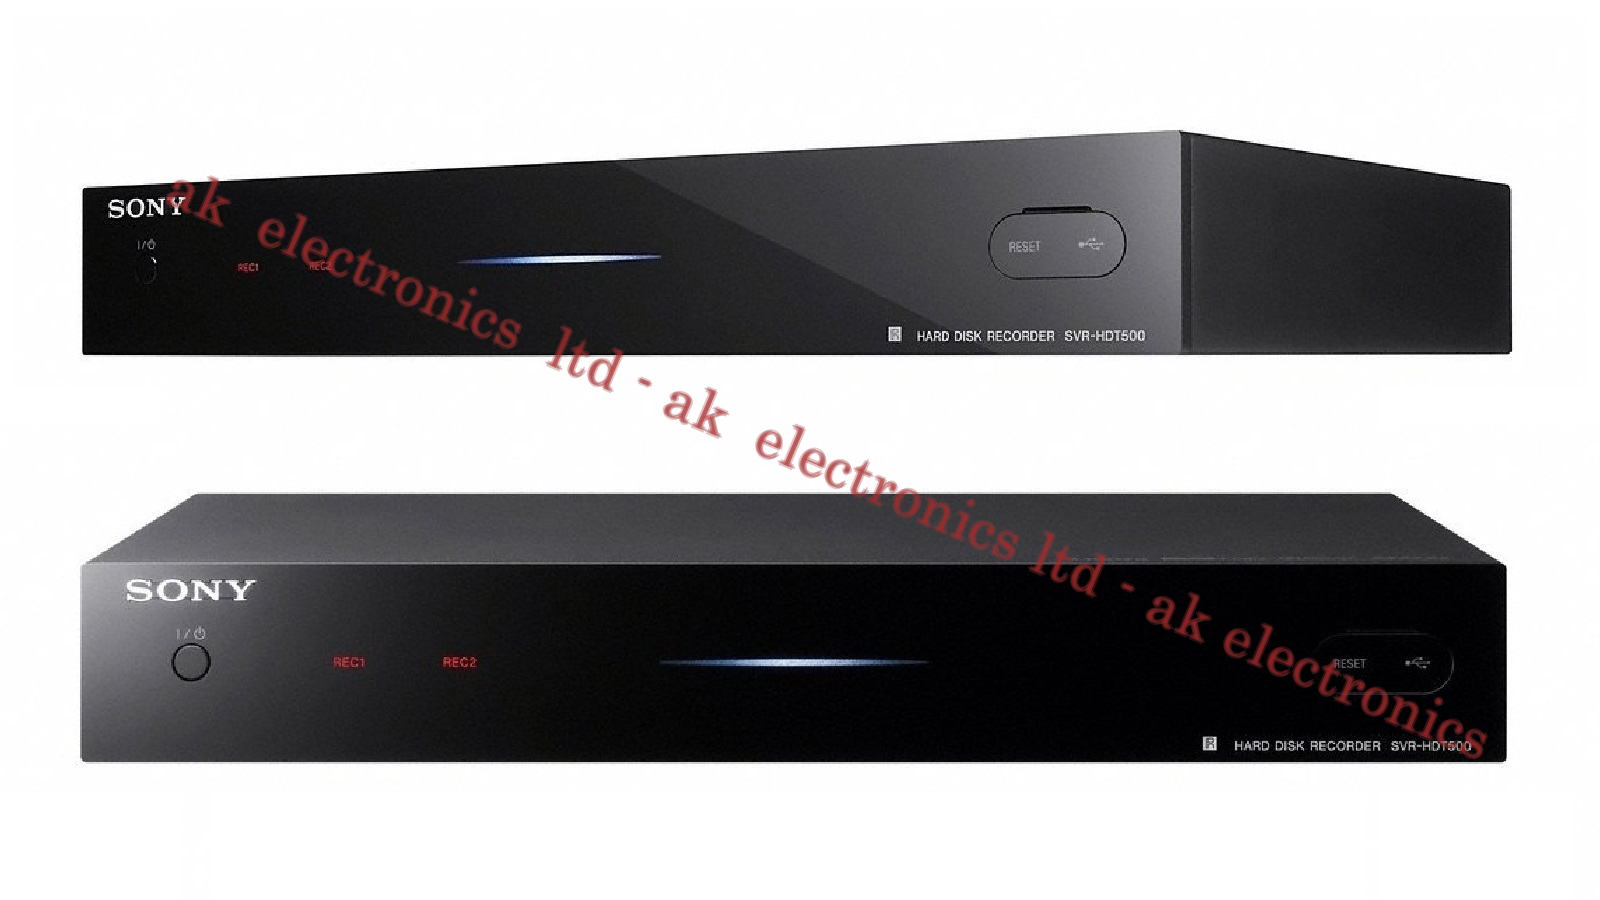 Details About Sony SVR HDT500 Twin Freeview HD Tuner Box 500GB HDD Recorder Receiver USB PVR